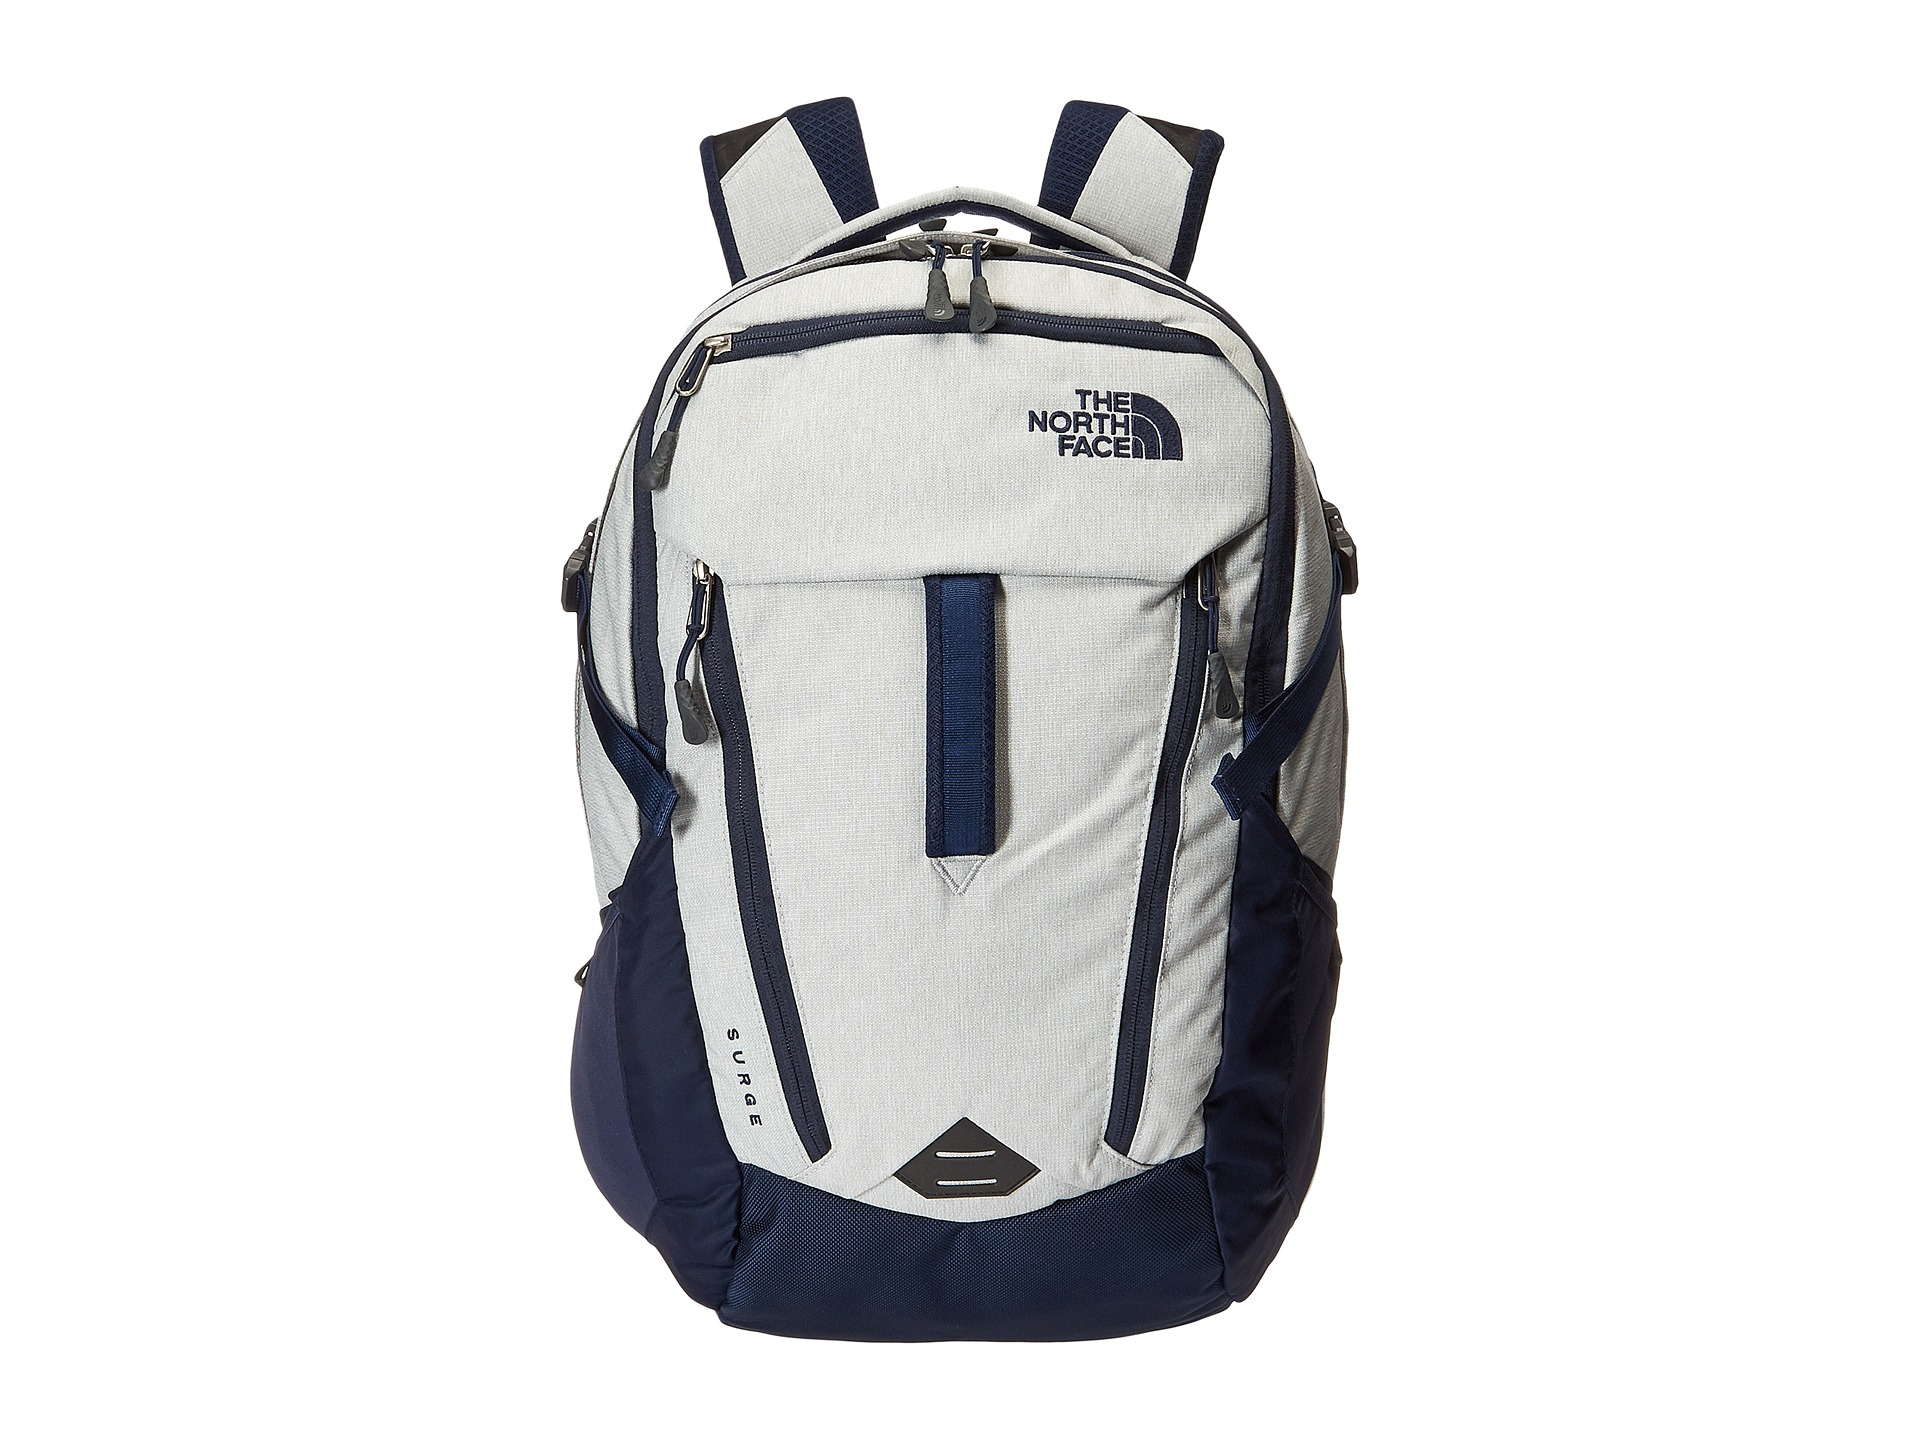 bb2a21854 The North Face Itinerant Backpack 30l- Fenix Toulouse Handball